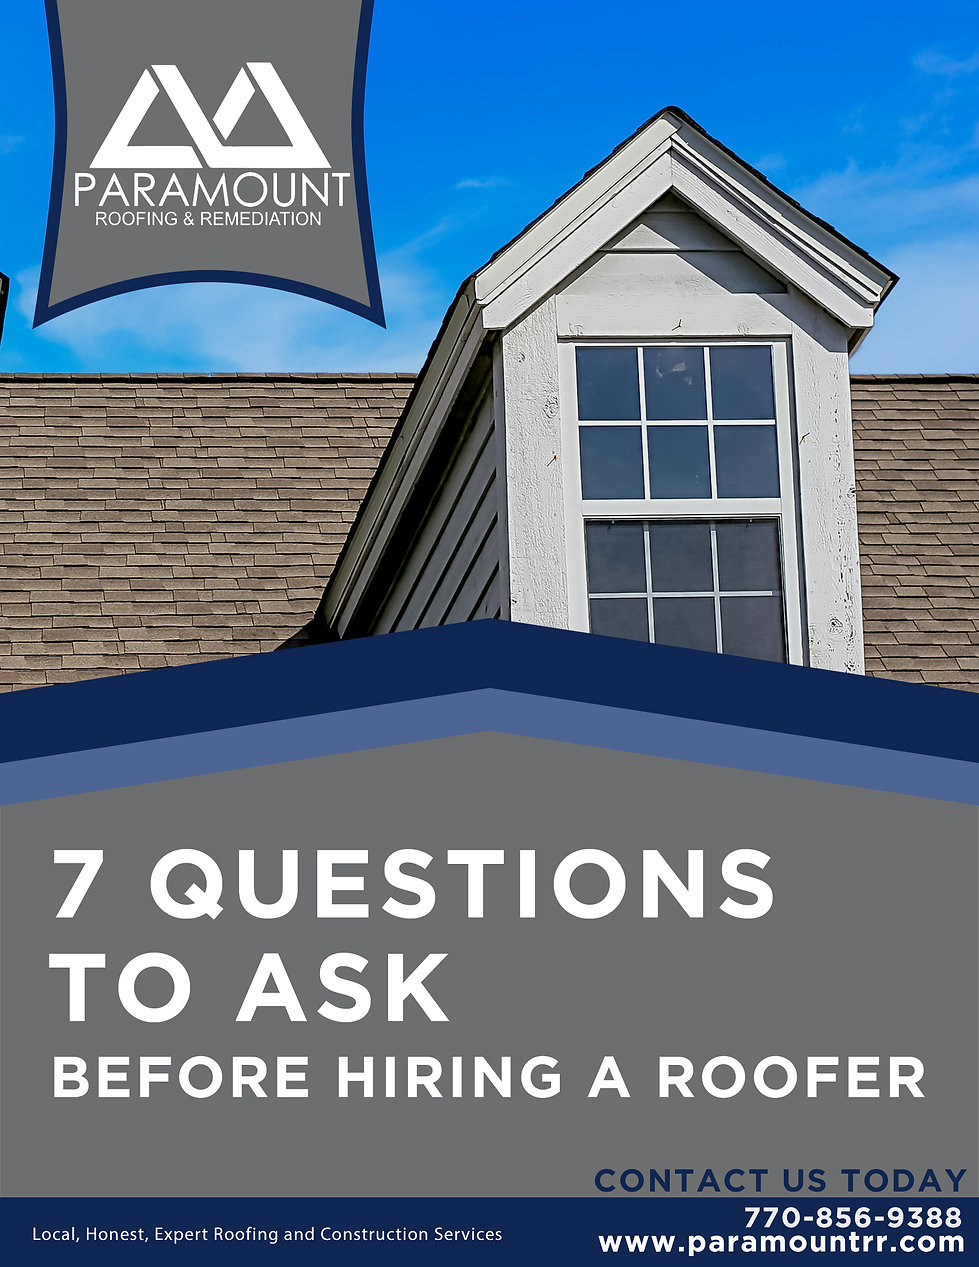 7-Questions-To-Ask-Your-Roofer.jpg